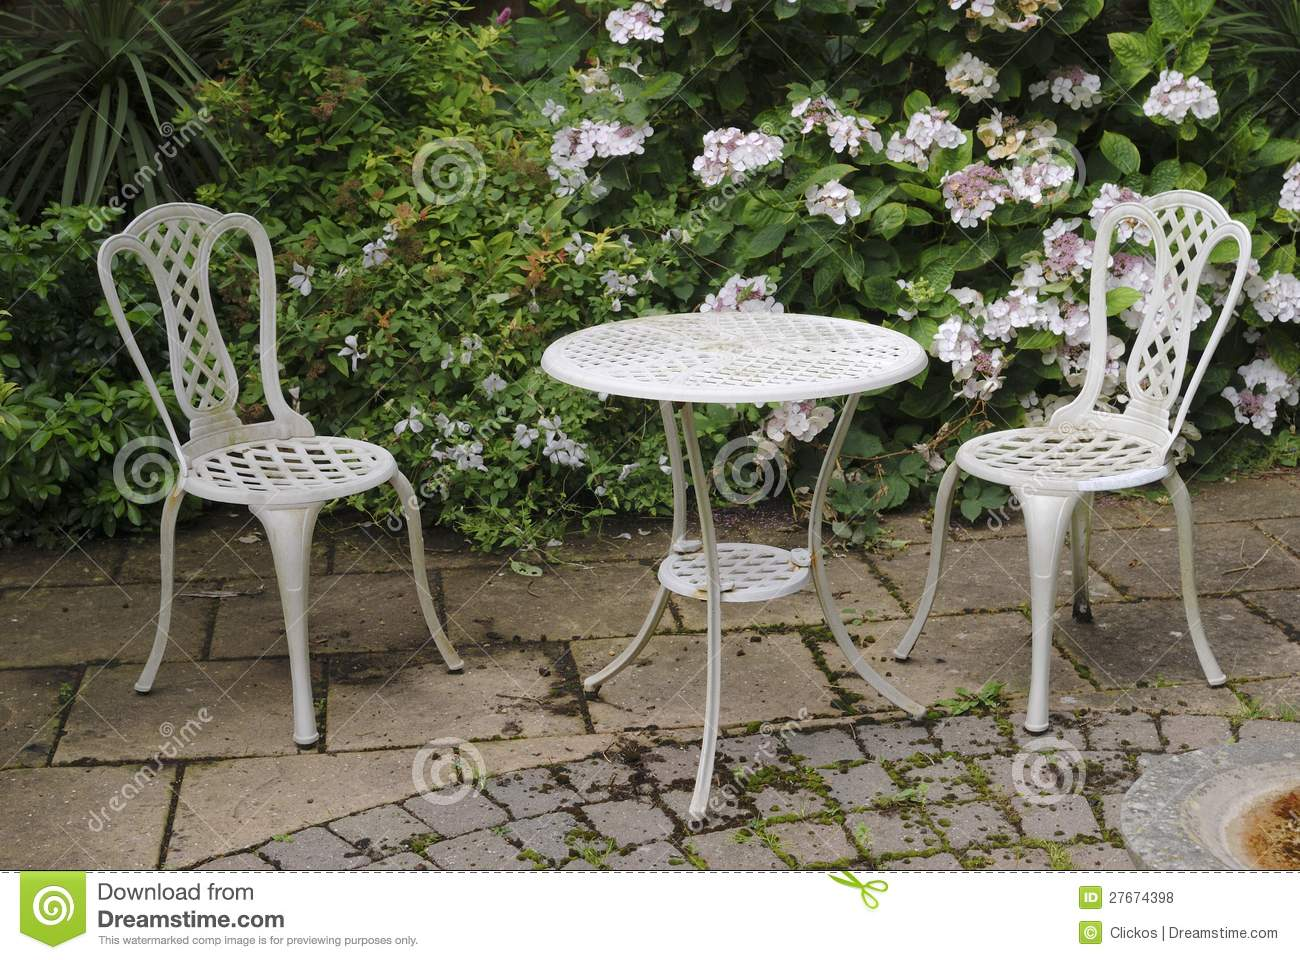 Garden Table And Chairs Bush Hydrangea Patio Ironwork Paving Plant Flower Chairless Uuzzgtw